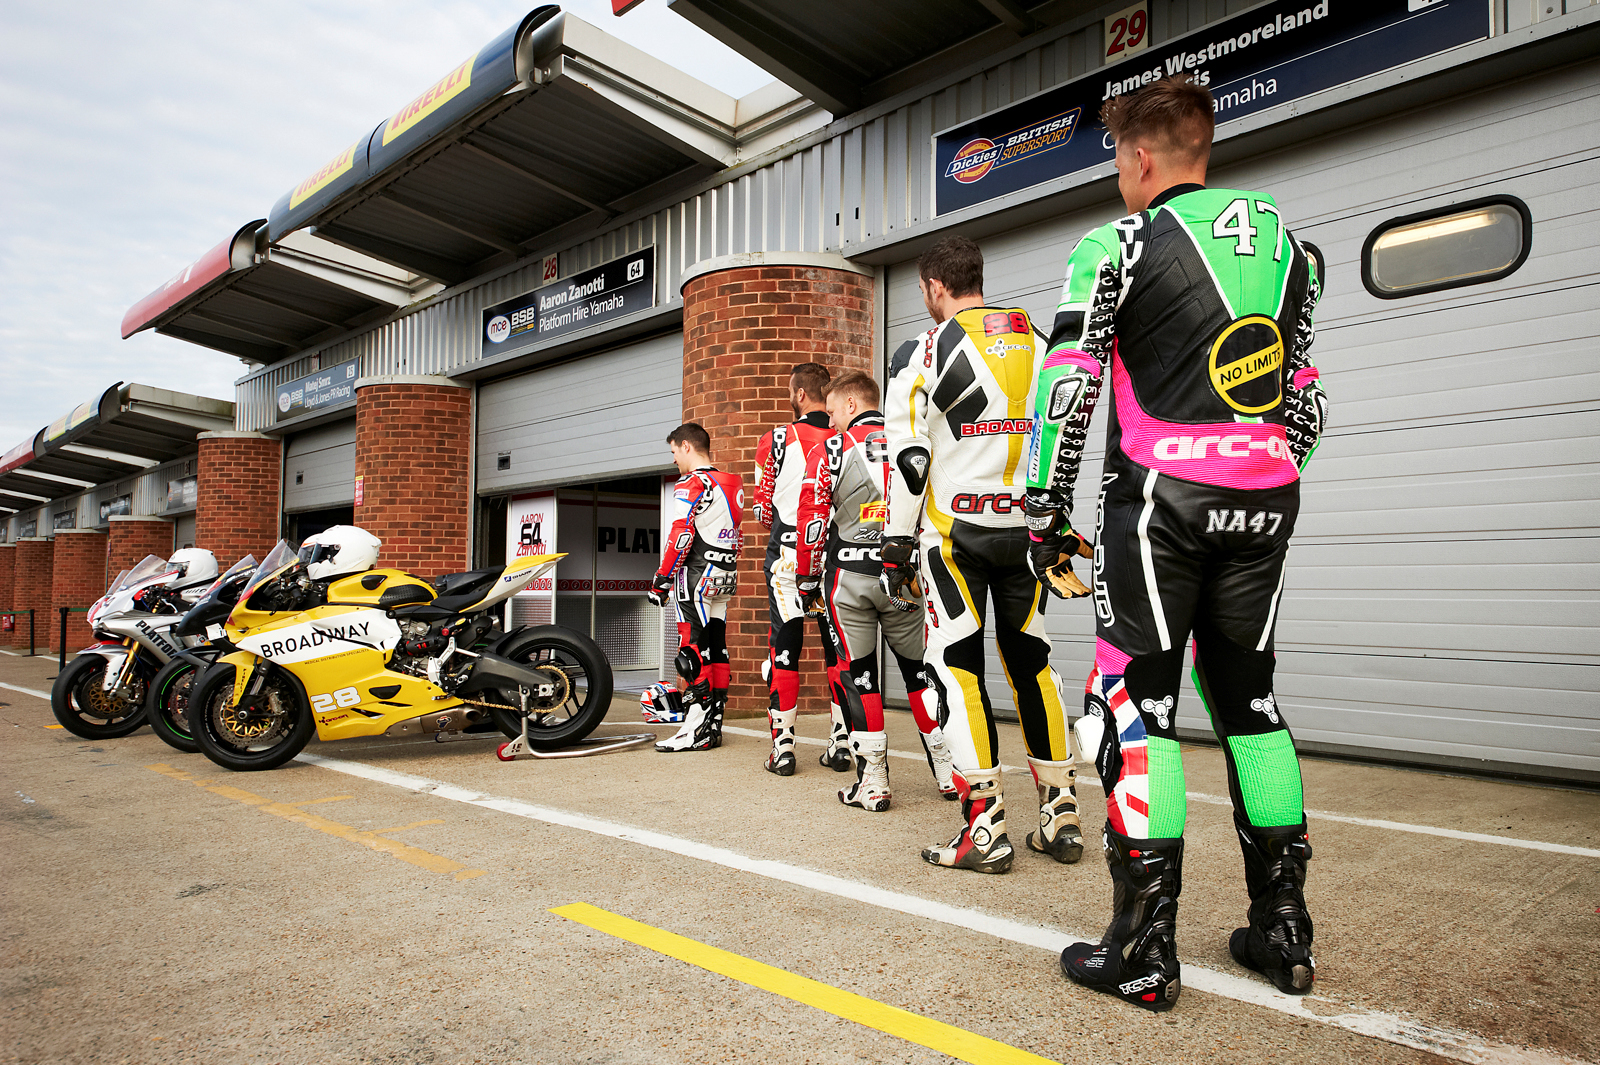 arc-on BSB riders 2016